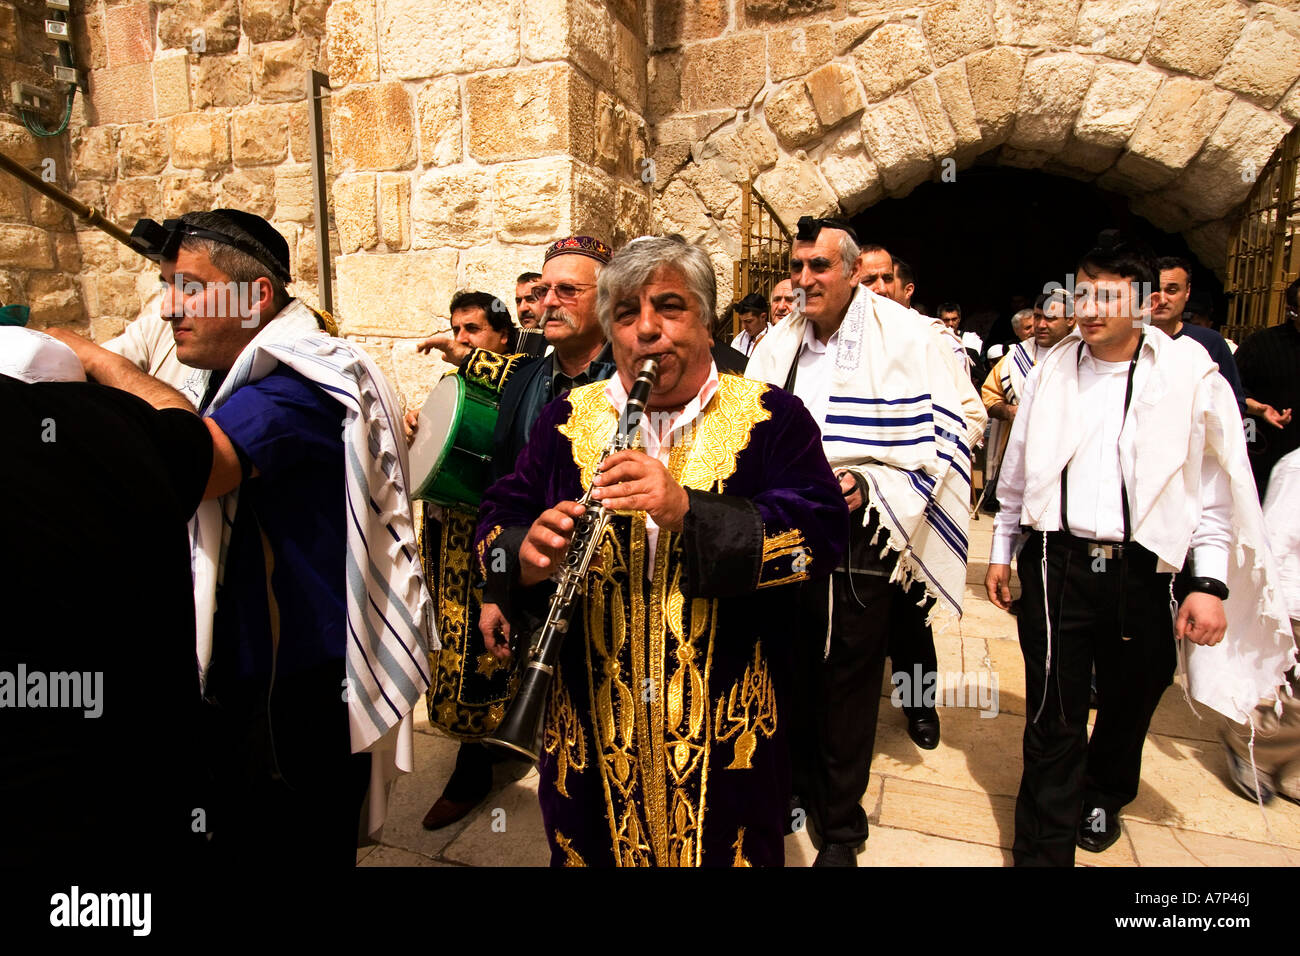 bukharan jews celebrating bar mitzvah ceremony at western wall jerusalem israel - Stock Image